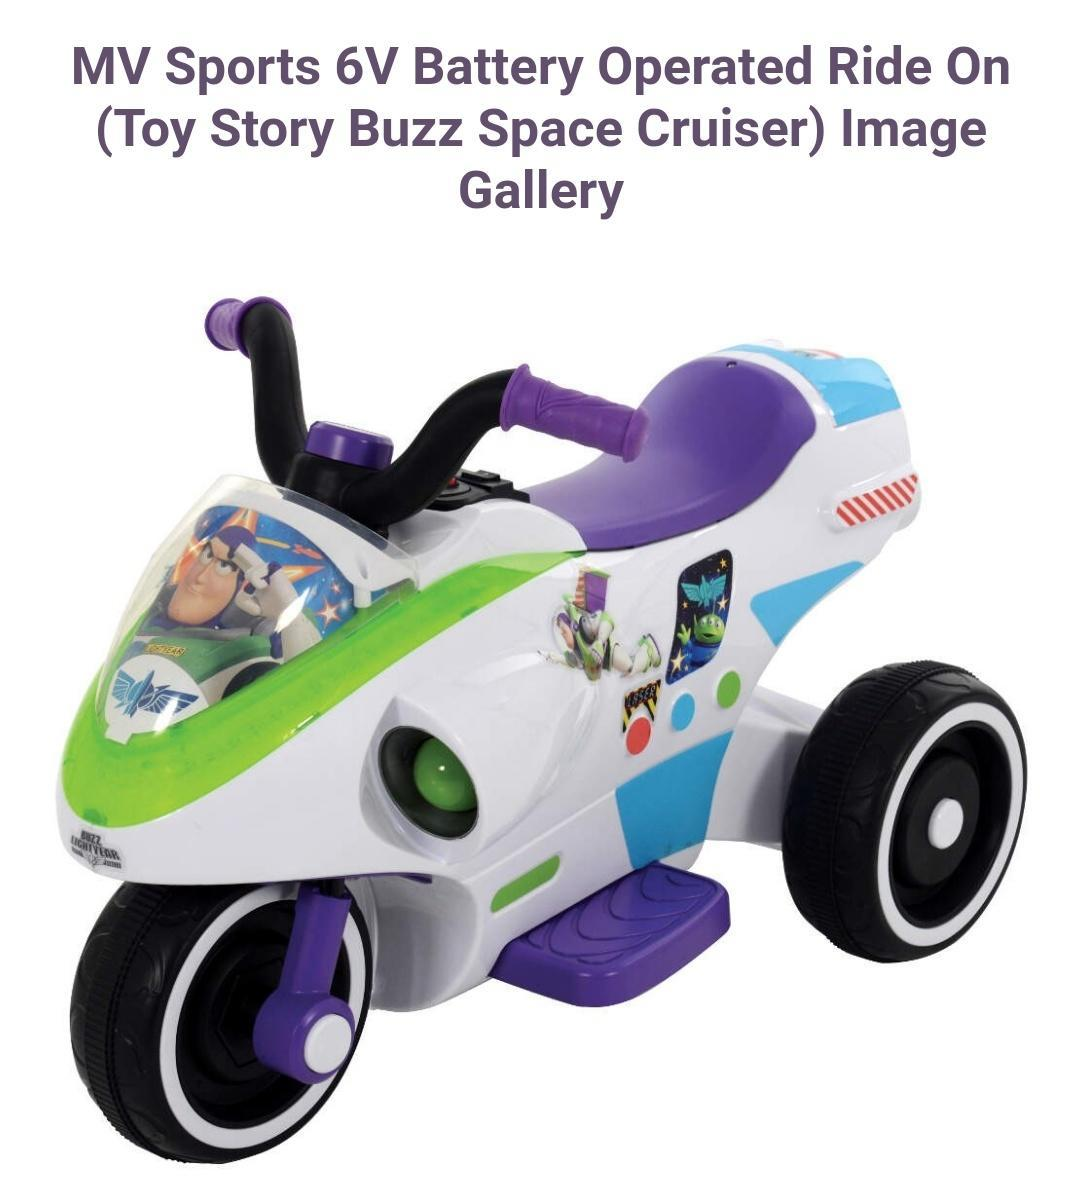 Buzz lightyear ride on electric 6 volt ready to gooo